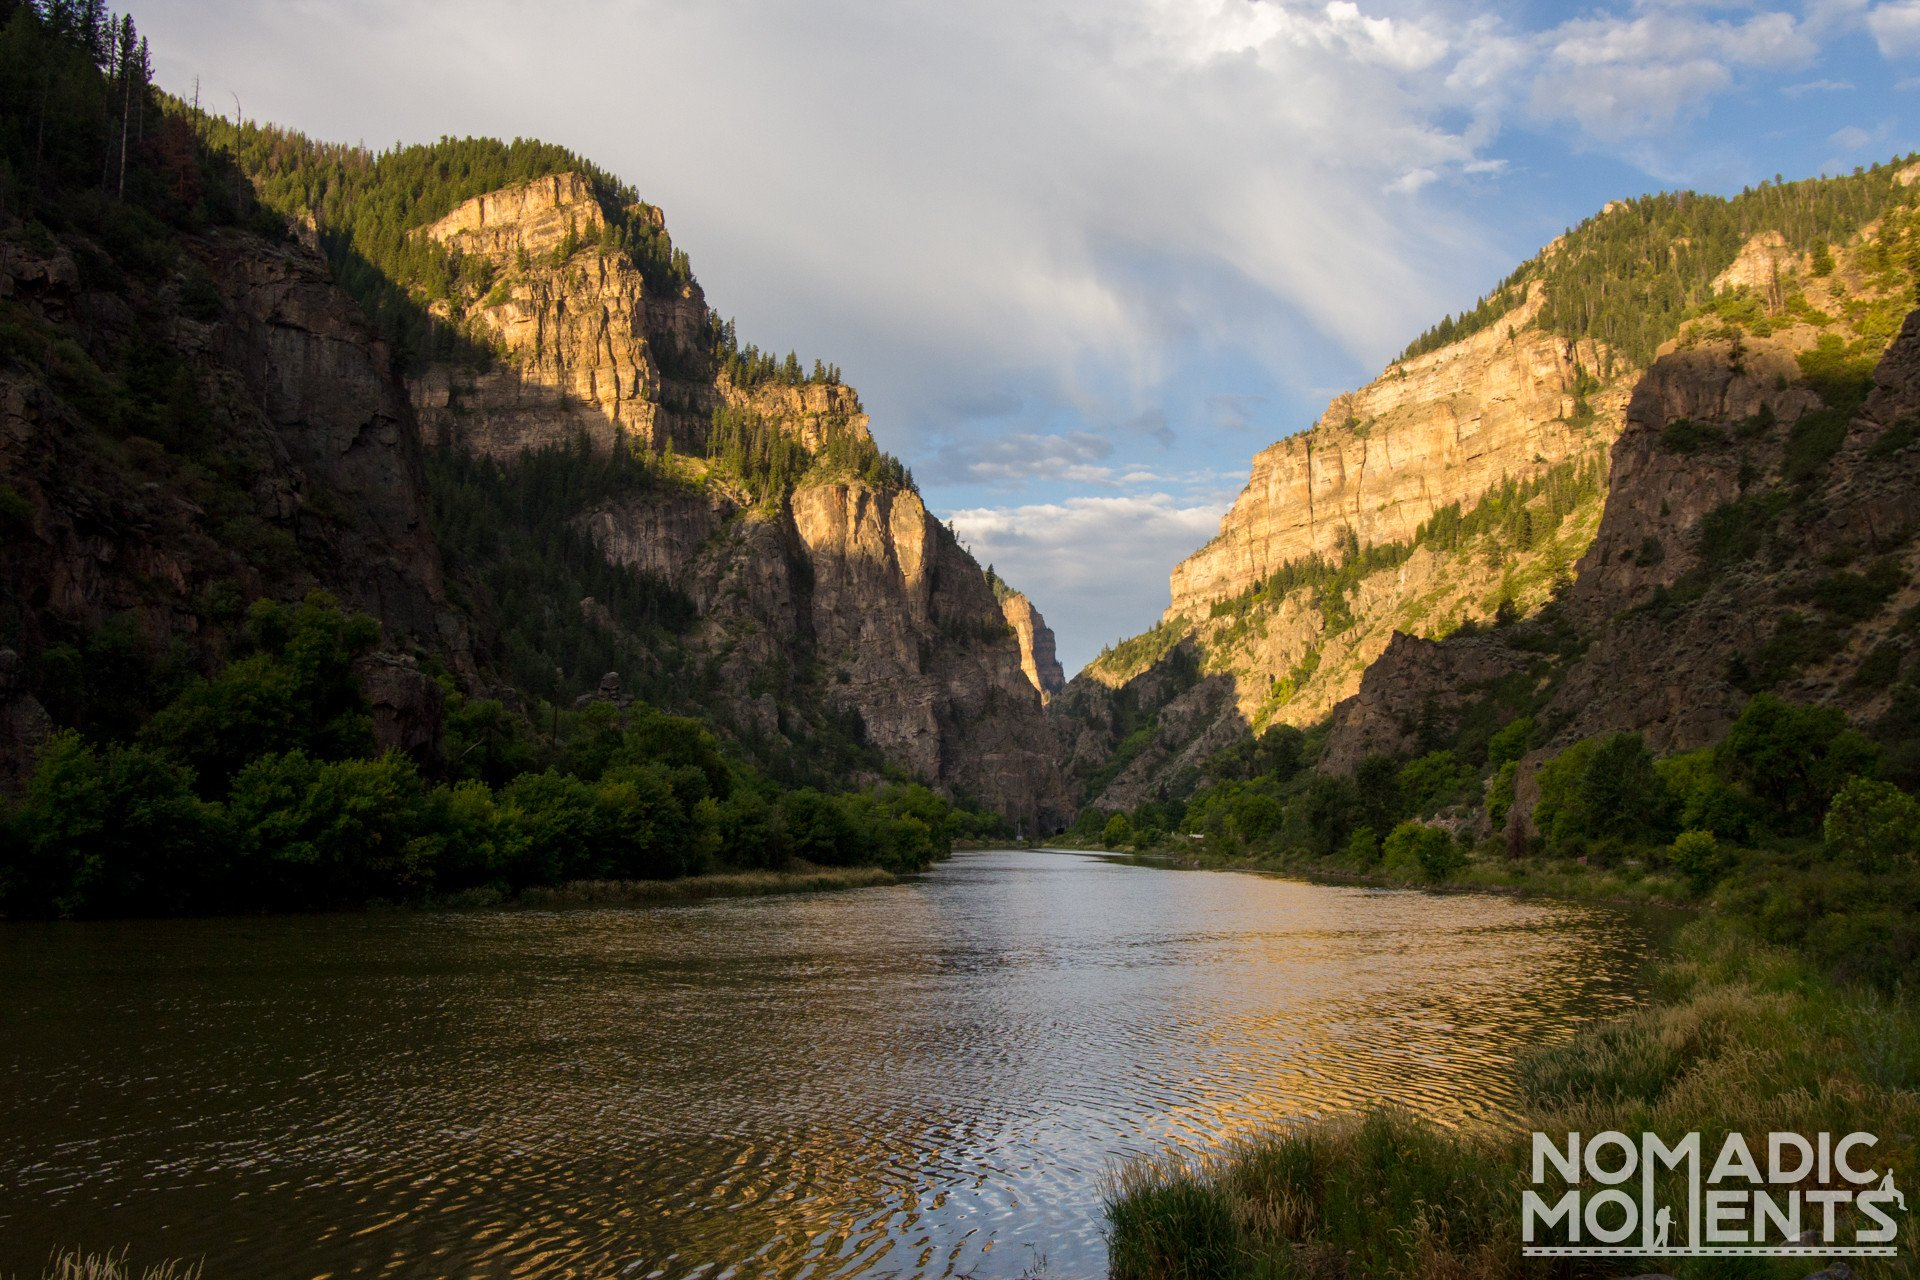 Glenwood Canyon - Best summer road trip in Colorado